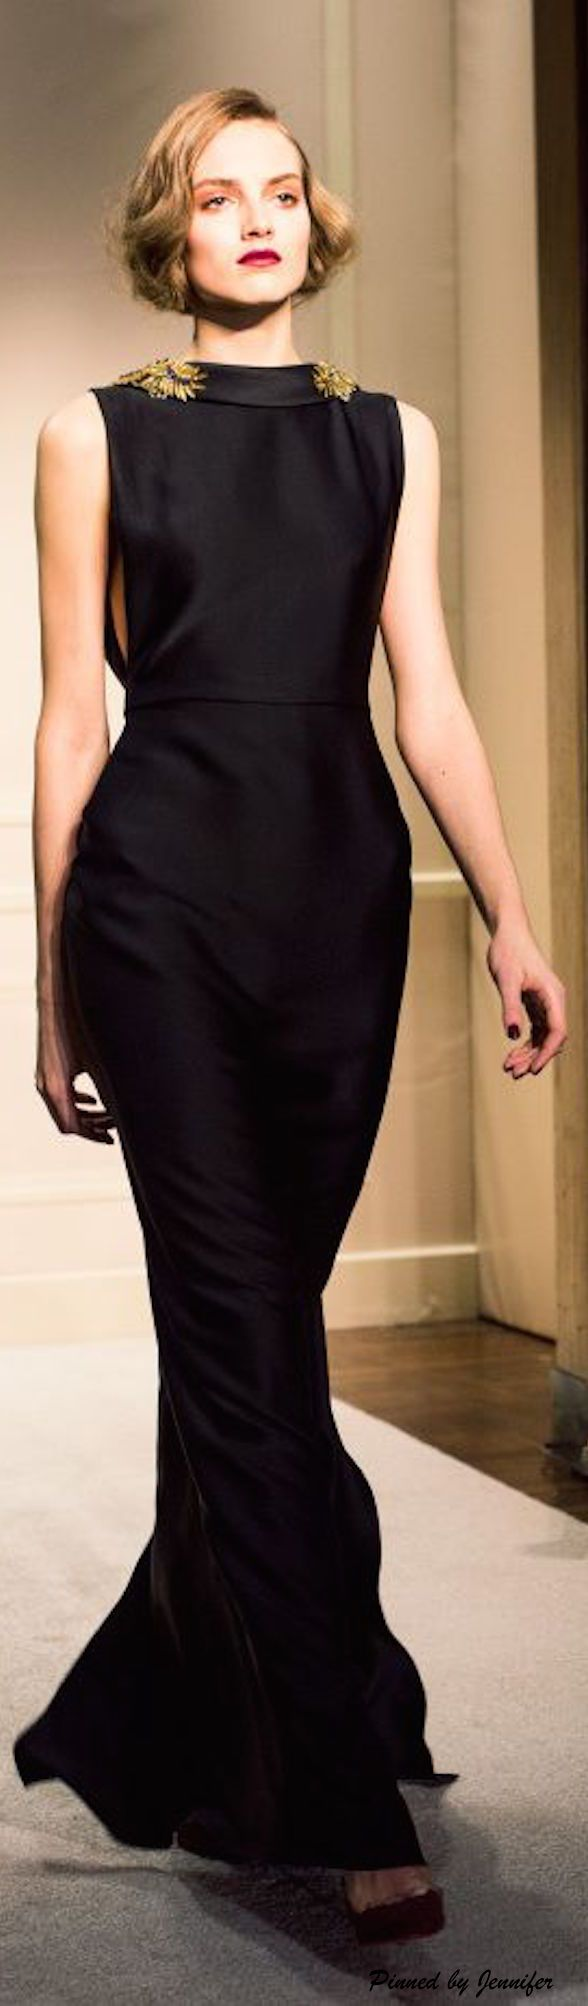 Class and importance in one dress. The black mermaid gown is lovely and timeless, and the gold decoration around the neckline adds that little pop of fun and style without losing any respect.